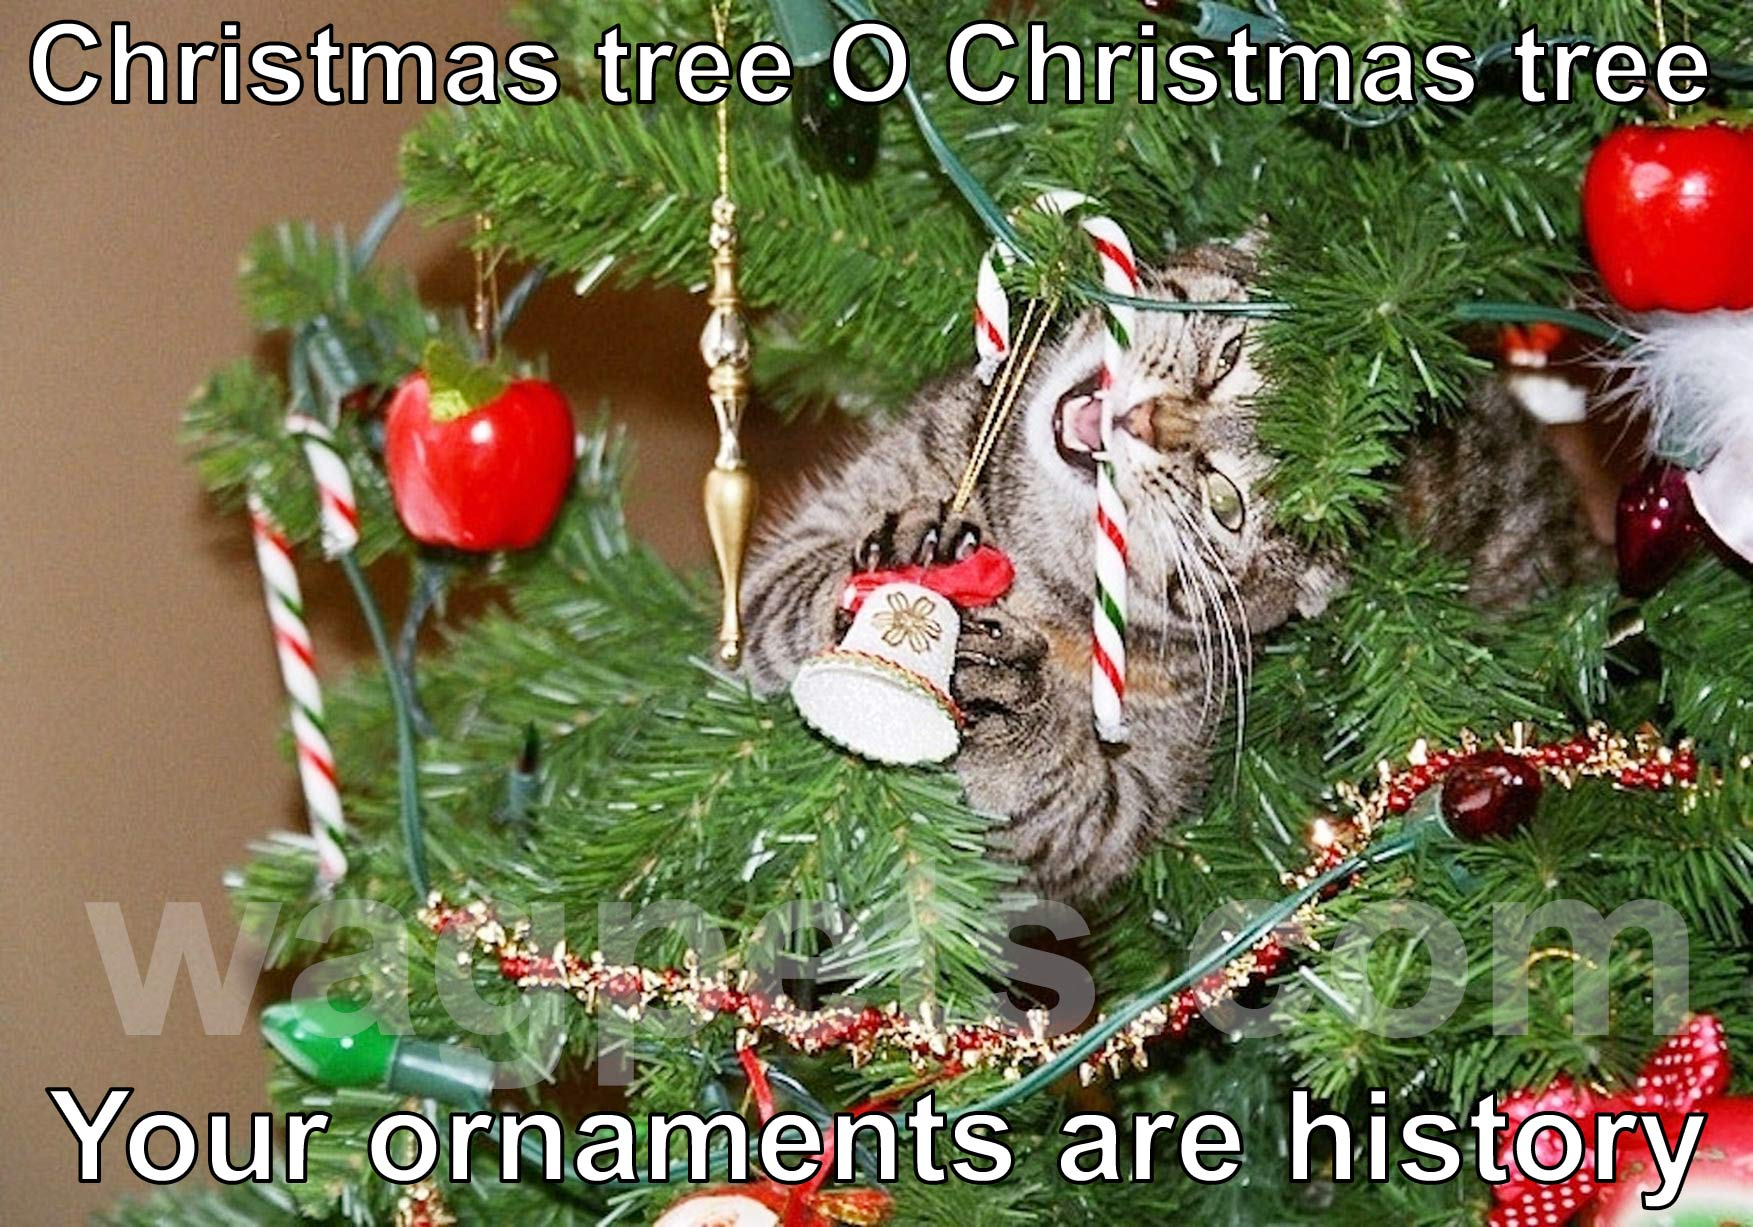 Christmas tree, O Christmas tree, your ornaments are history